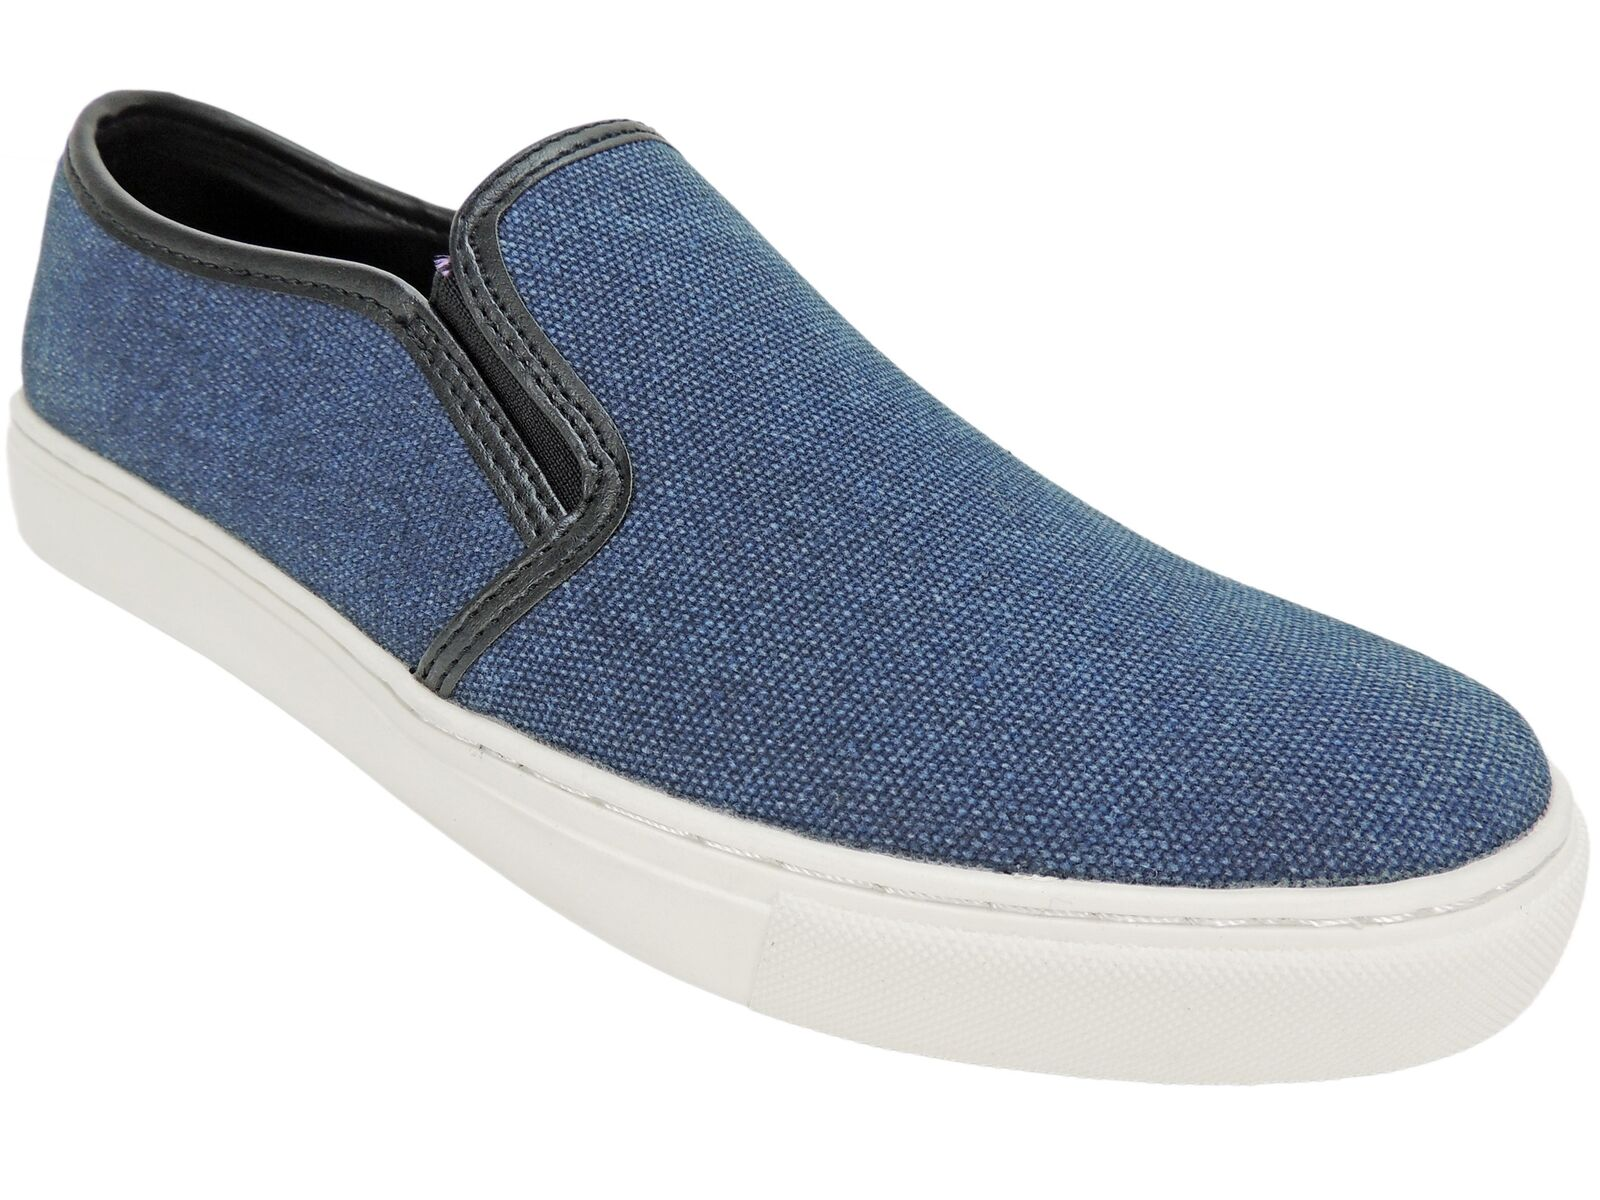 Kenneth Cole Reaction Para hombre Azul Marino Zapatillas Done It Again Lona M